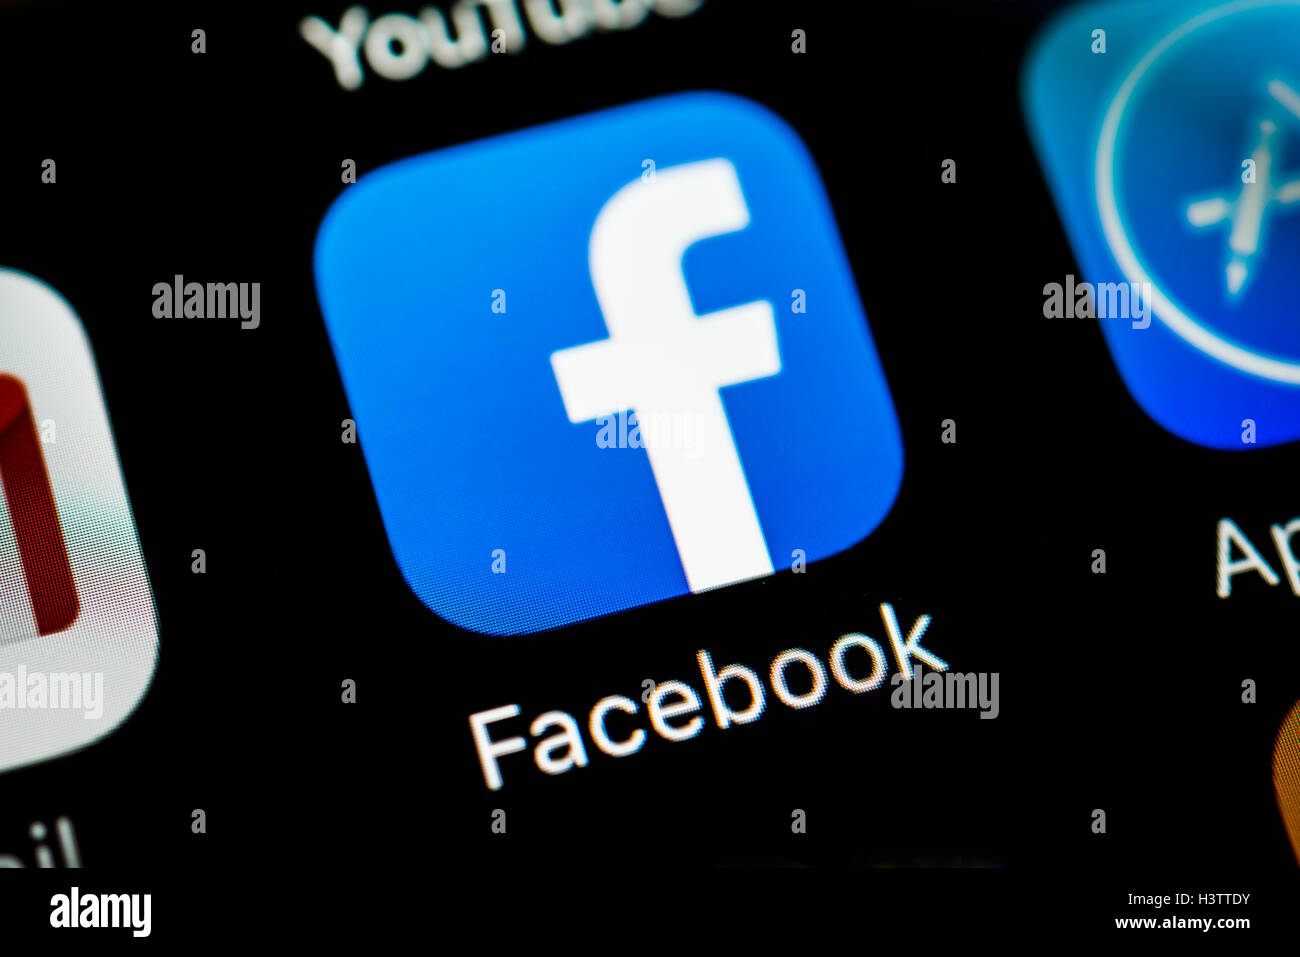 Smartphone screen with Facebook app icon - Stock Image